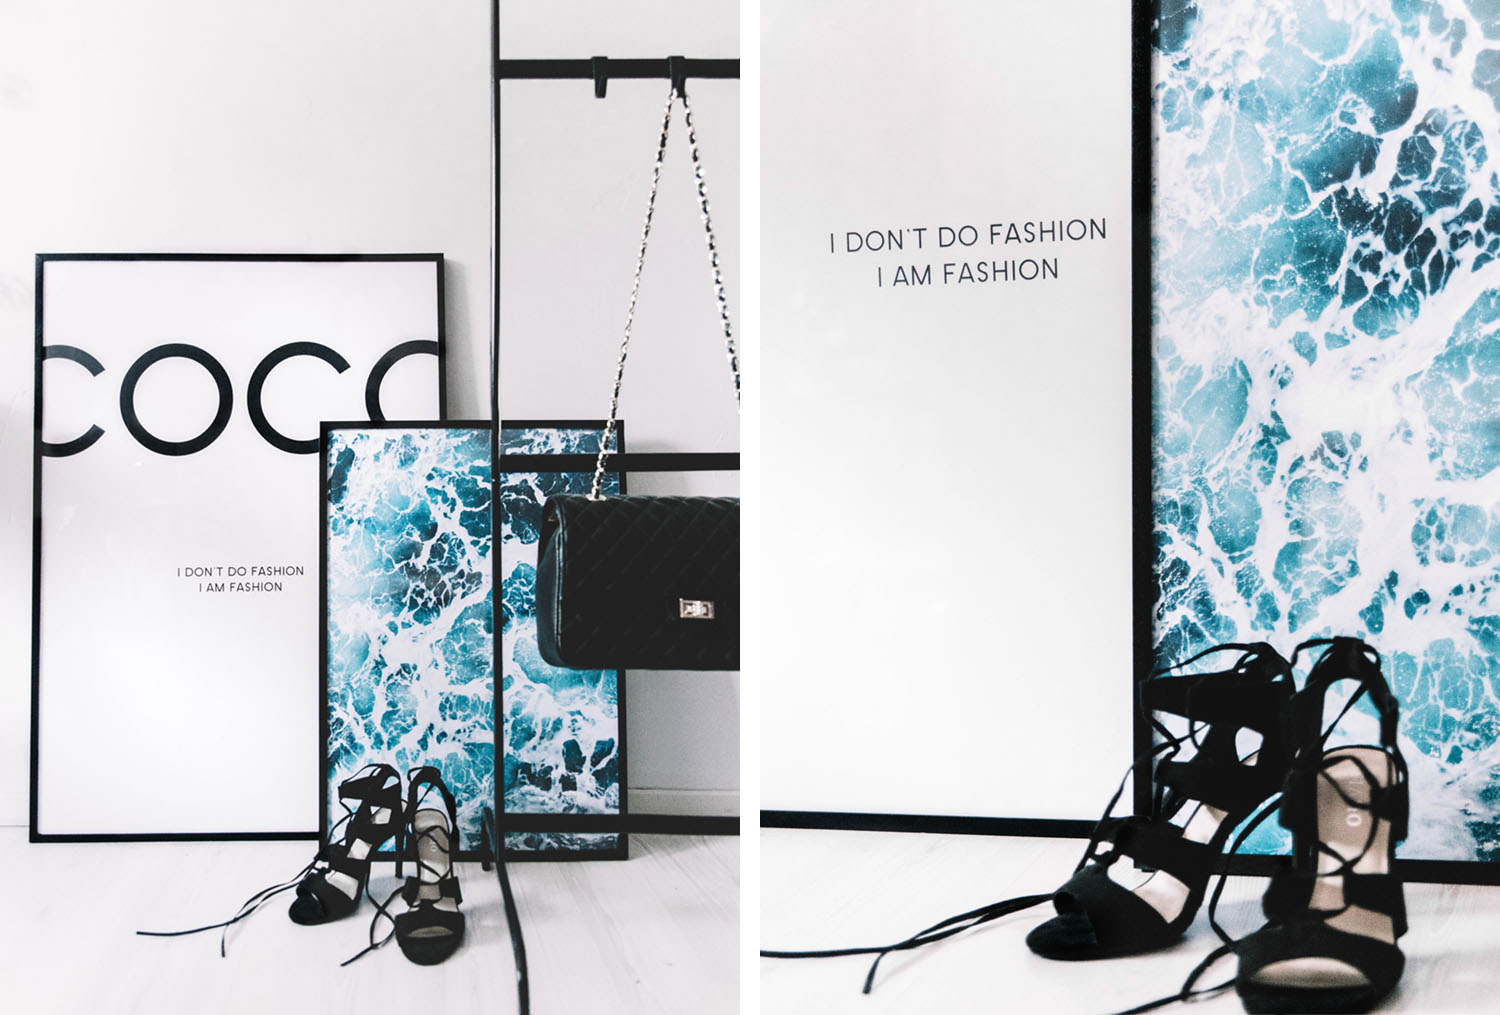 Coco Chanel Poster & Ocean Poster from Desenio on floor with high heels